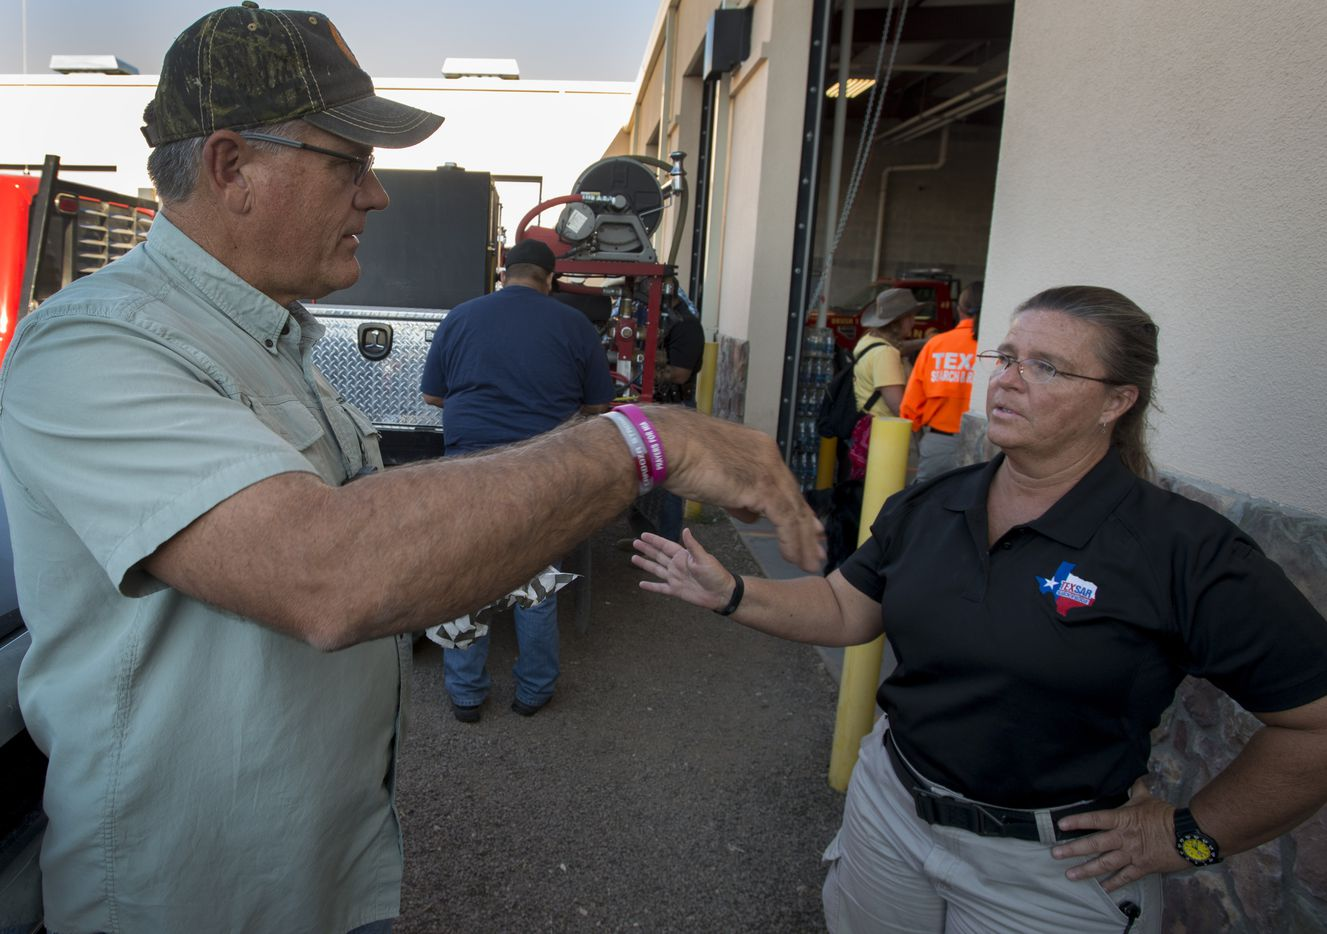 Brewster County Sheriff Ronny Dodson talks with Dawn Keller, West Texas Division Leader for Texas Search and Rescue about the ground her team covered Saturday, Oct. 22, 2016 in their search for Zuzu Verk.